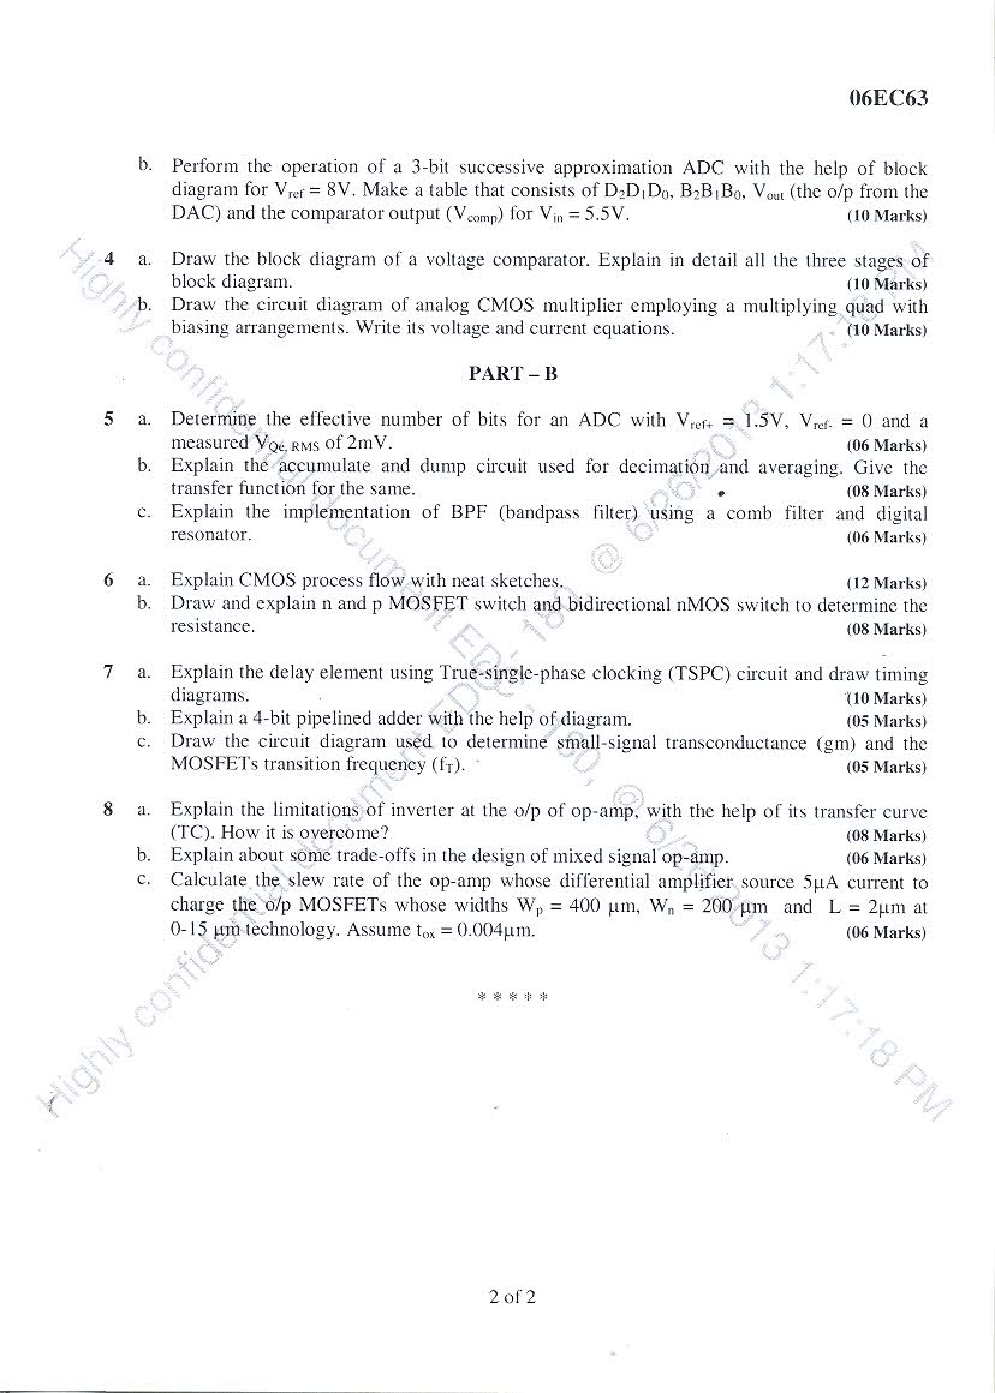 VTU QUESTION PAPERS 6th Semester Electronics & Communication Engineering 2011-2014 - Page 4